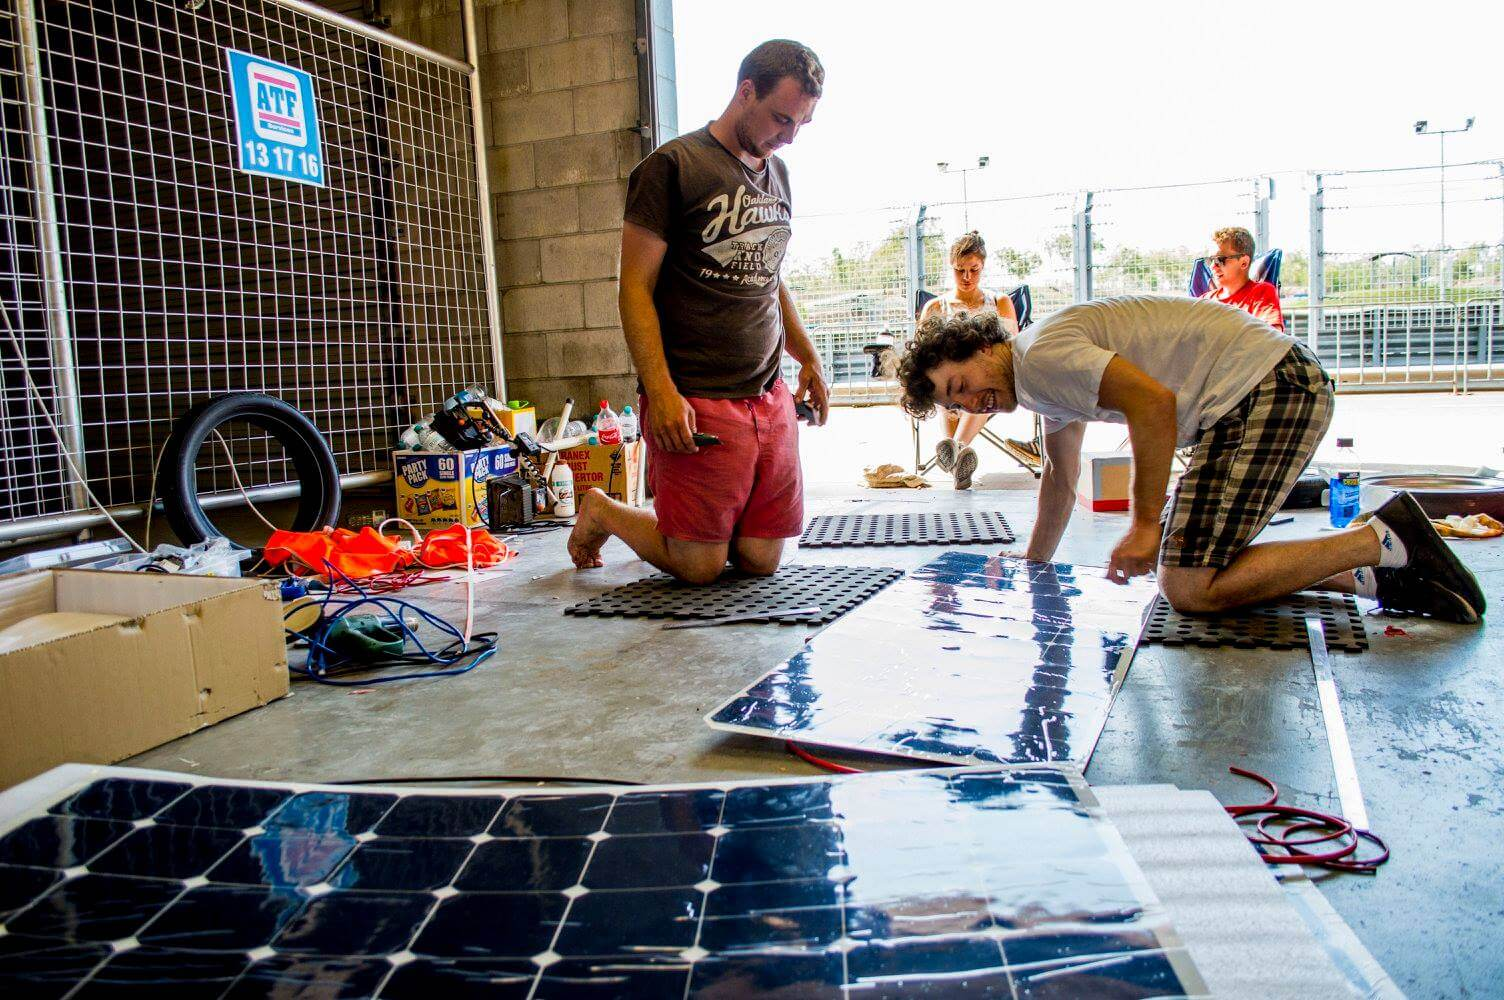 Installing flexible solar panels onto AURST world solar challenge entry